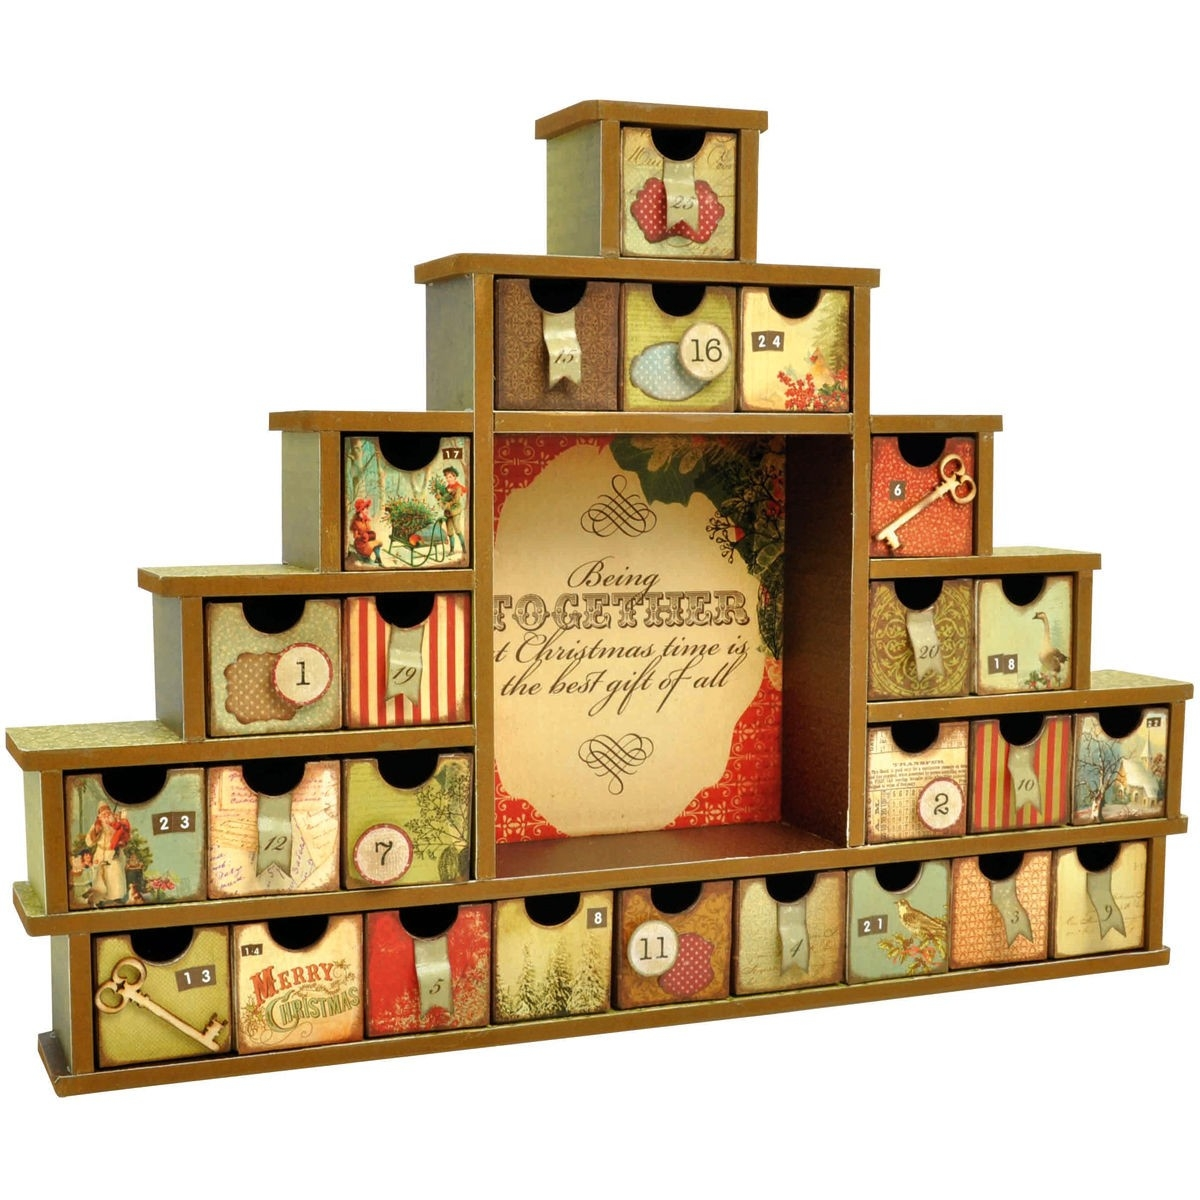 Kaisercraft Beyond The Page Mdf Shadow Box With Drawers Advent  Wooden Shadow Box Advent Calendar